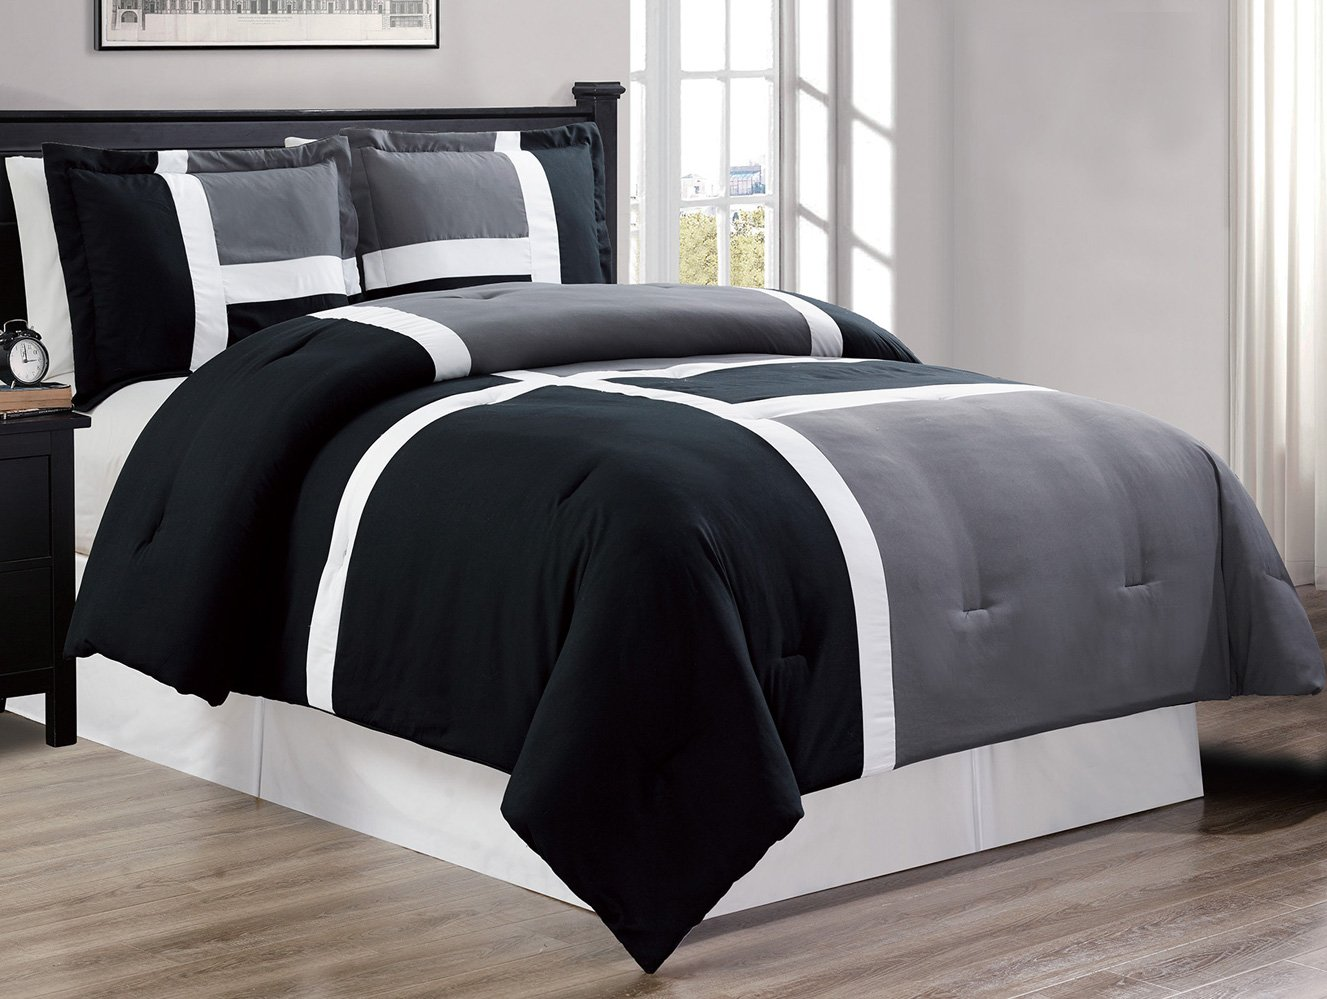 3 piece BLACK / GREY / WHITE Goose Down Alternative Color Panel Oversize Comforter Set